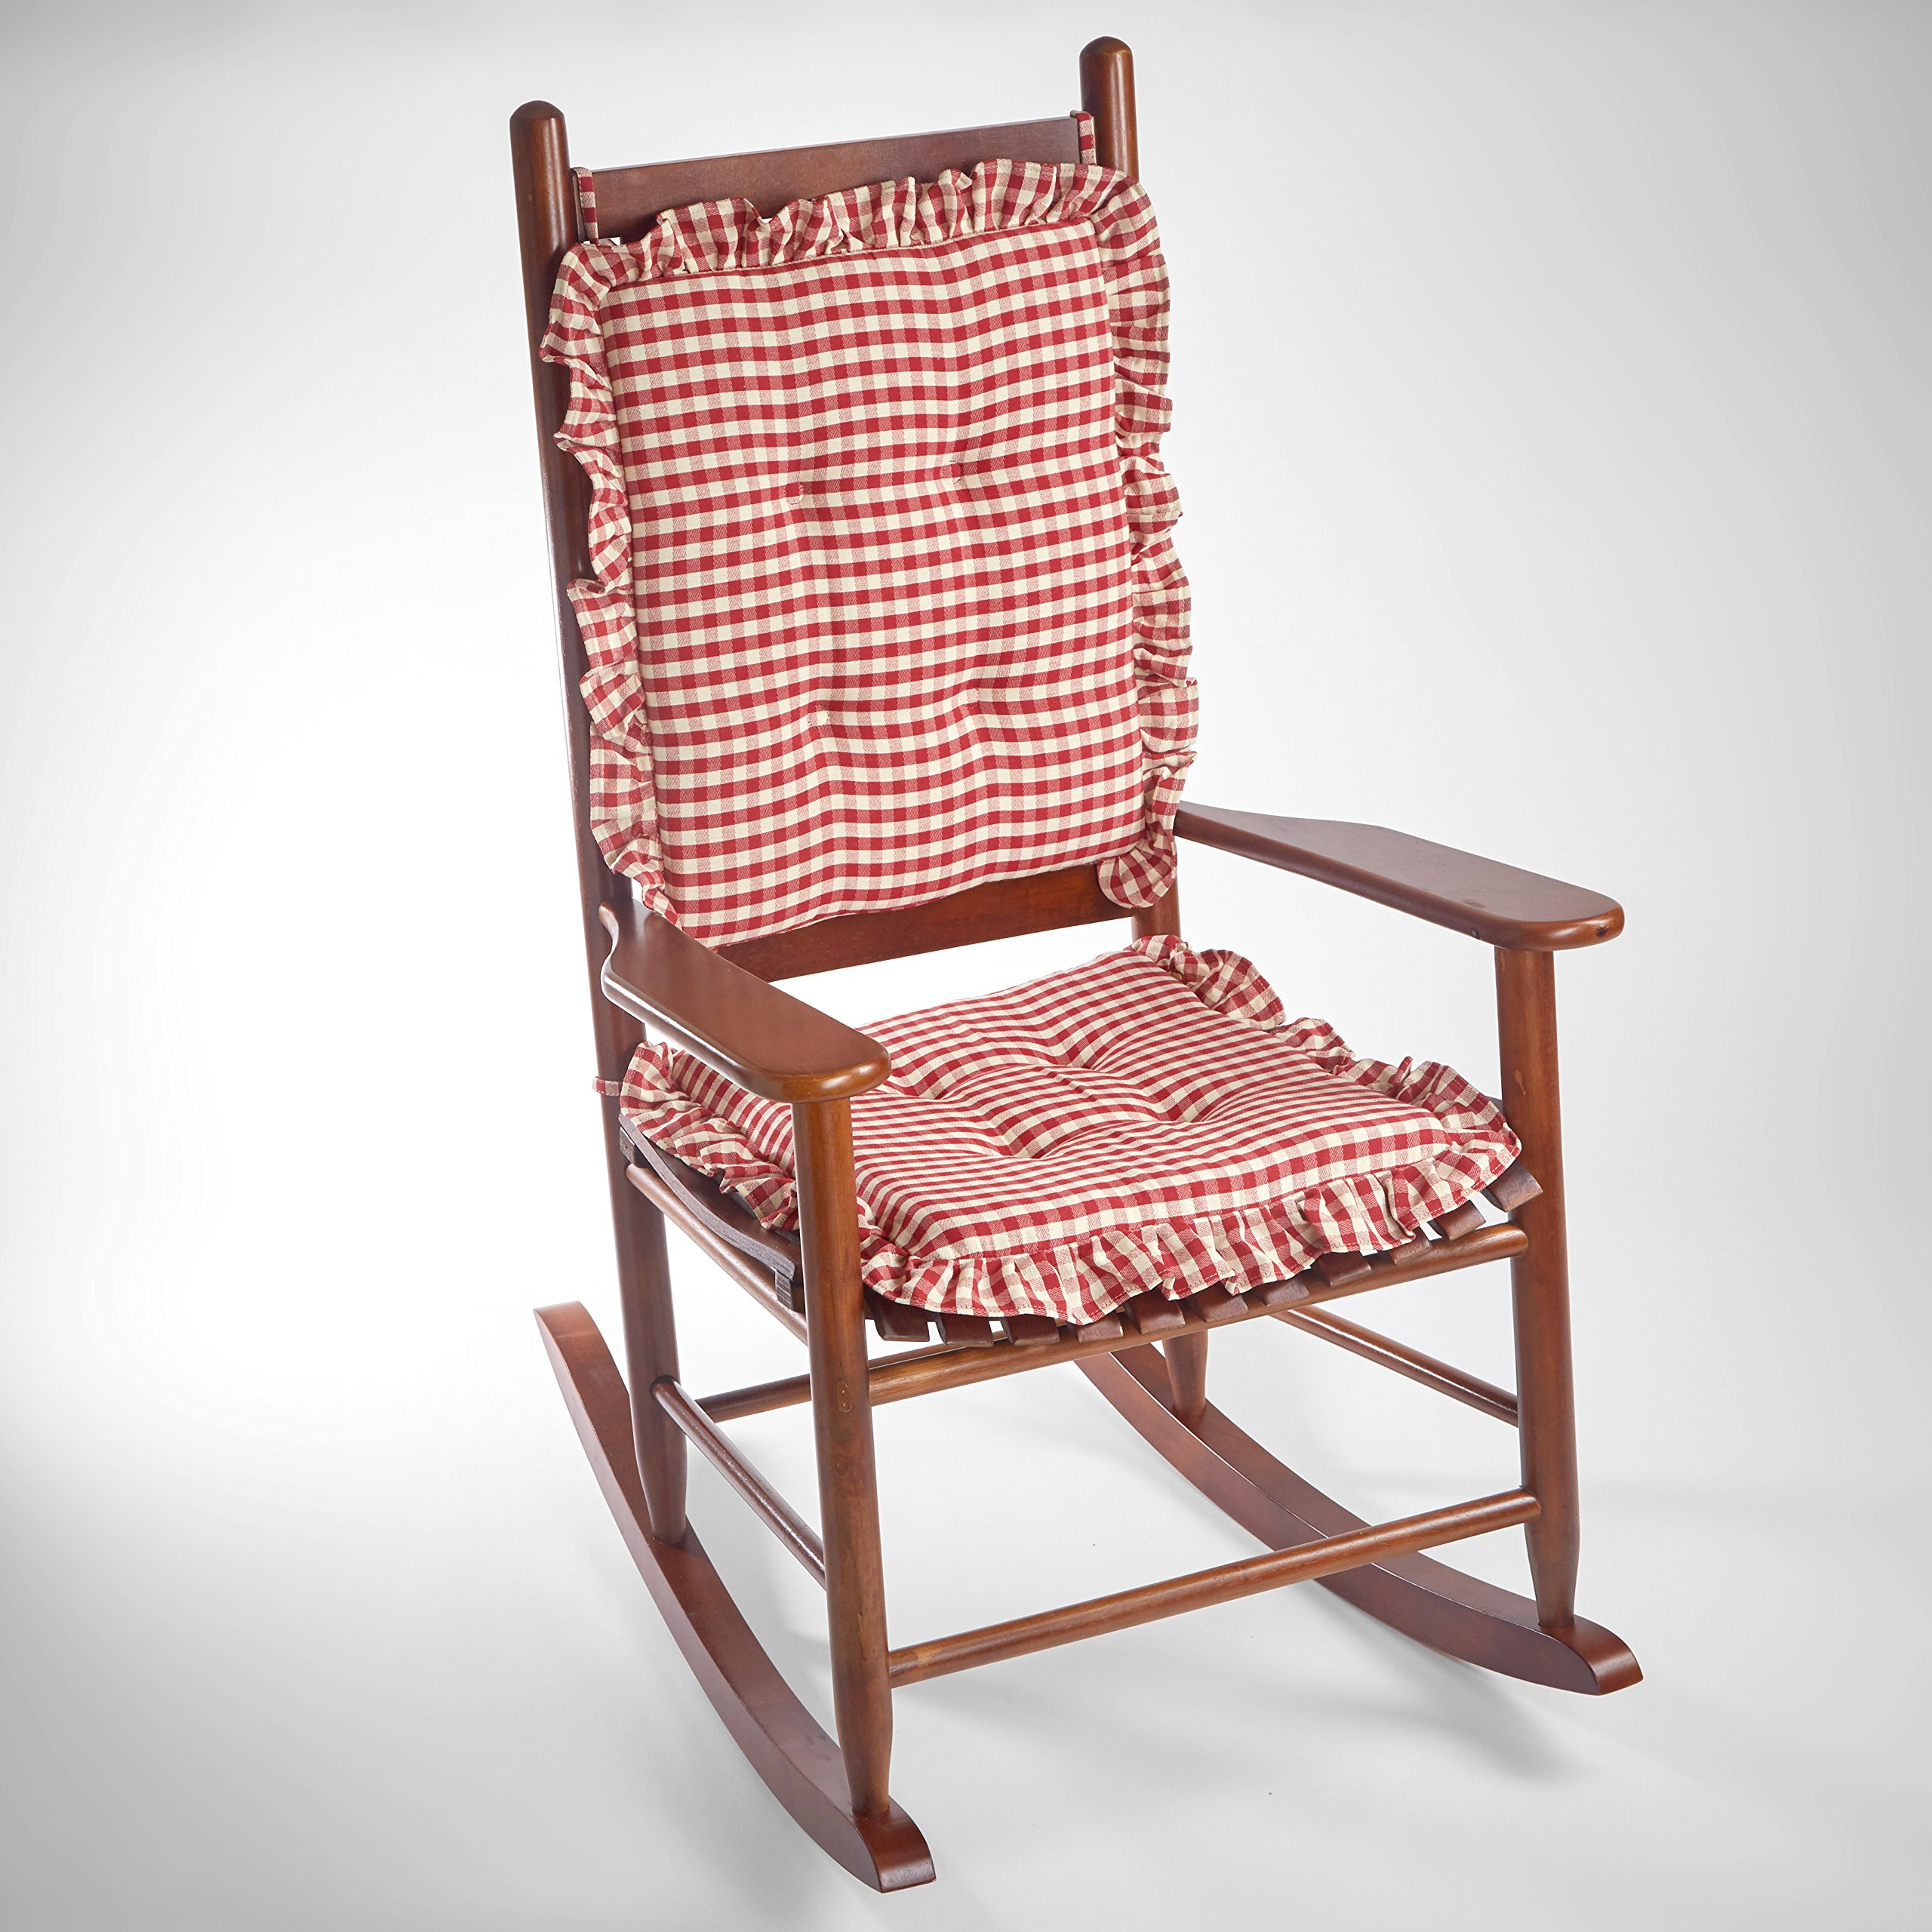 Charmant Get Quotations · Square Gingham Ruffle Rocking Chair Cushions (Red)